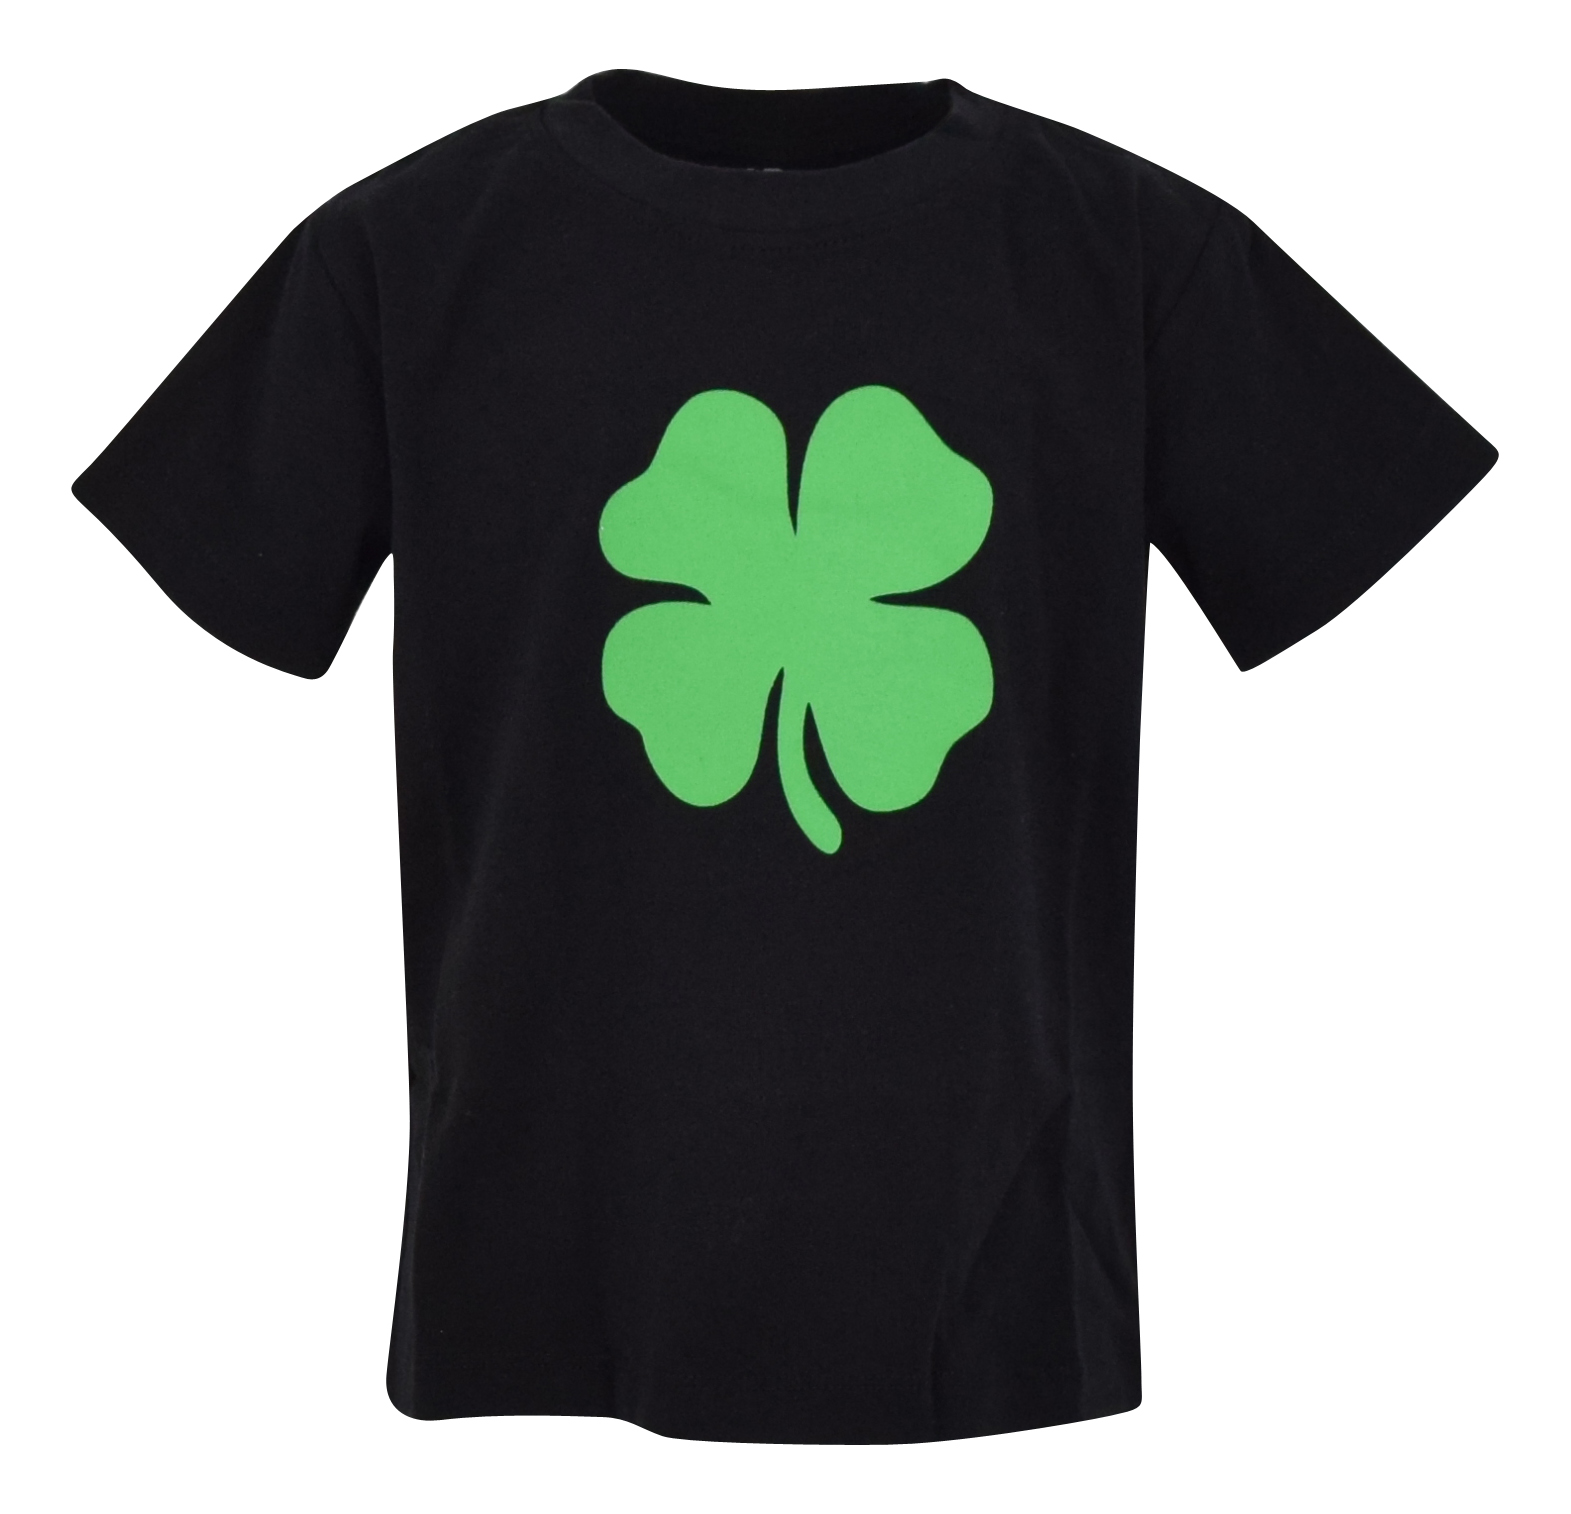 Boys-2-Piece-ST-Patricks-Day-Clover-Outfit-2t-3t-4t-5-6-7-8-Toddler-Kids-Clothes thumbnail 23